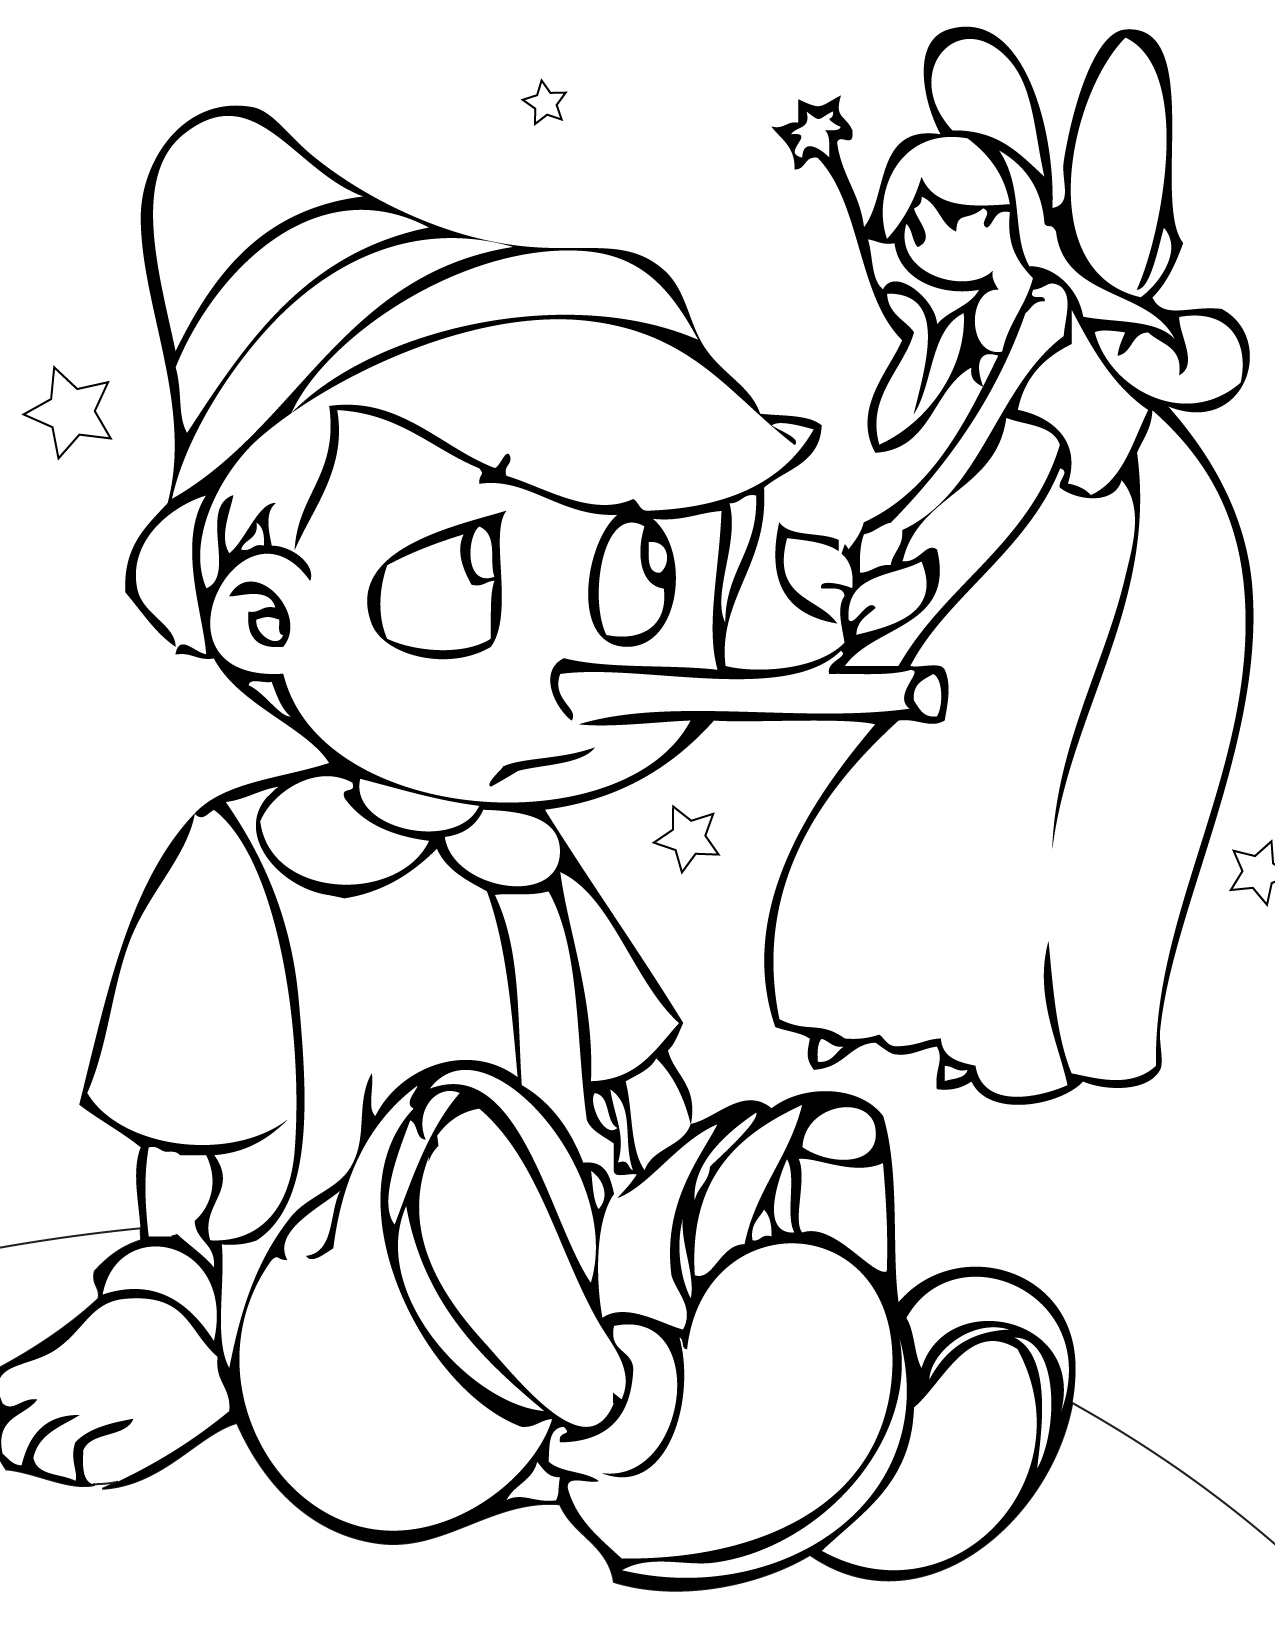 Free Printable Pinocchio Coloring Pages For Kids Coloring Page For Kid